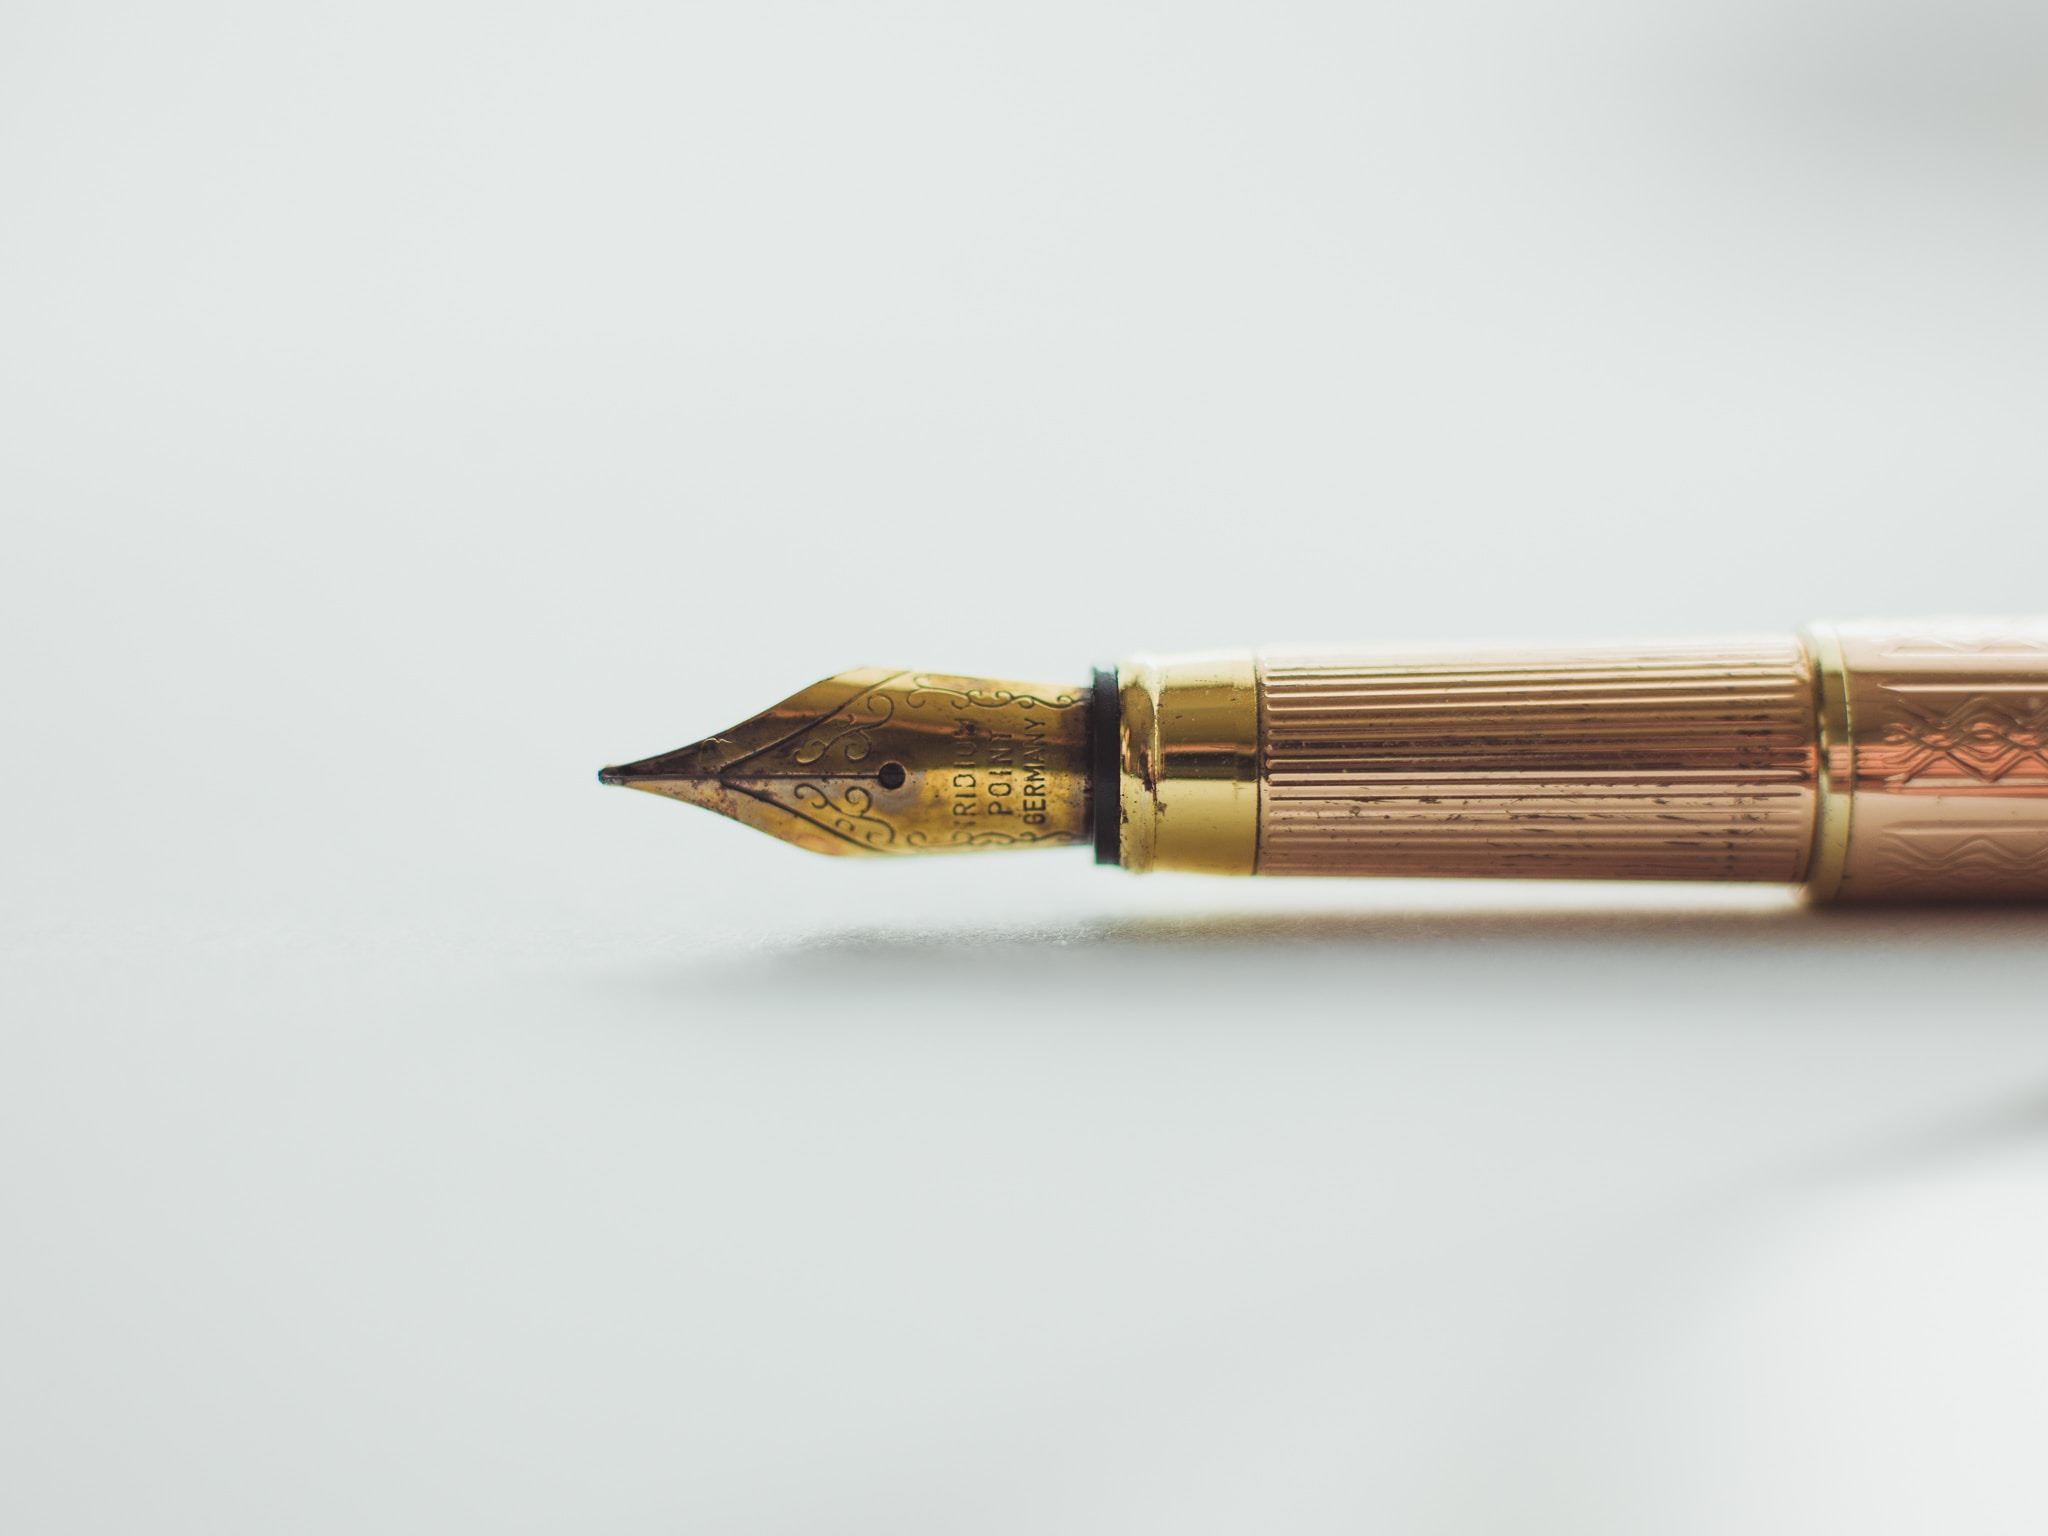 An old fashioned decorative ink pen plated in gold and copper colored metals.